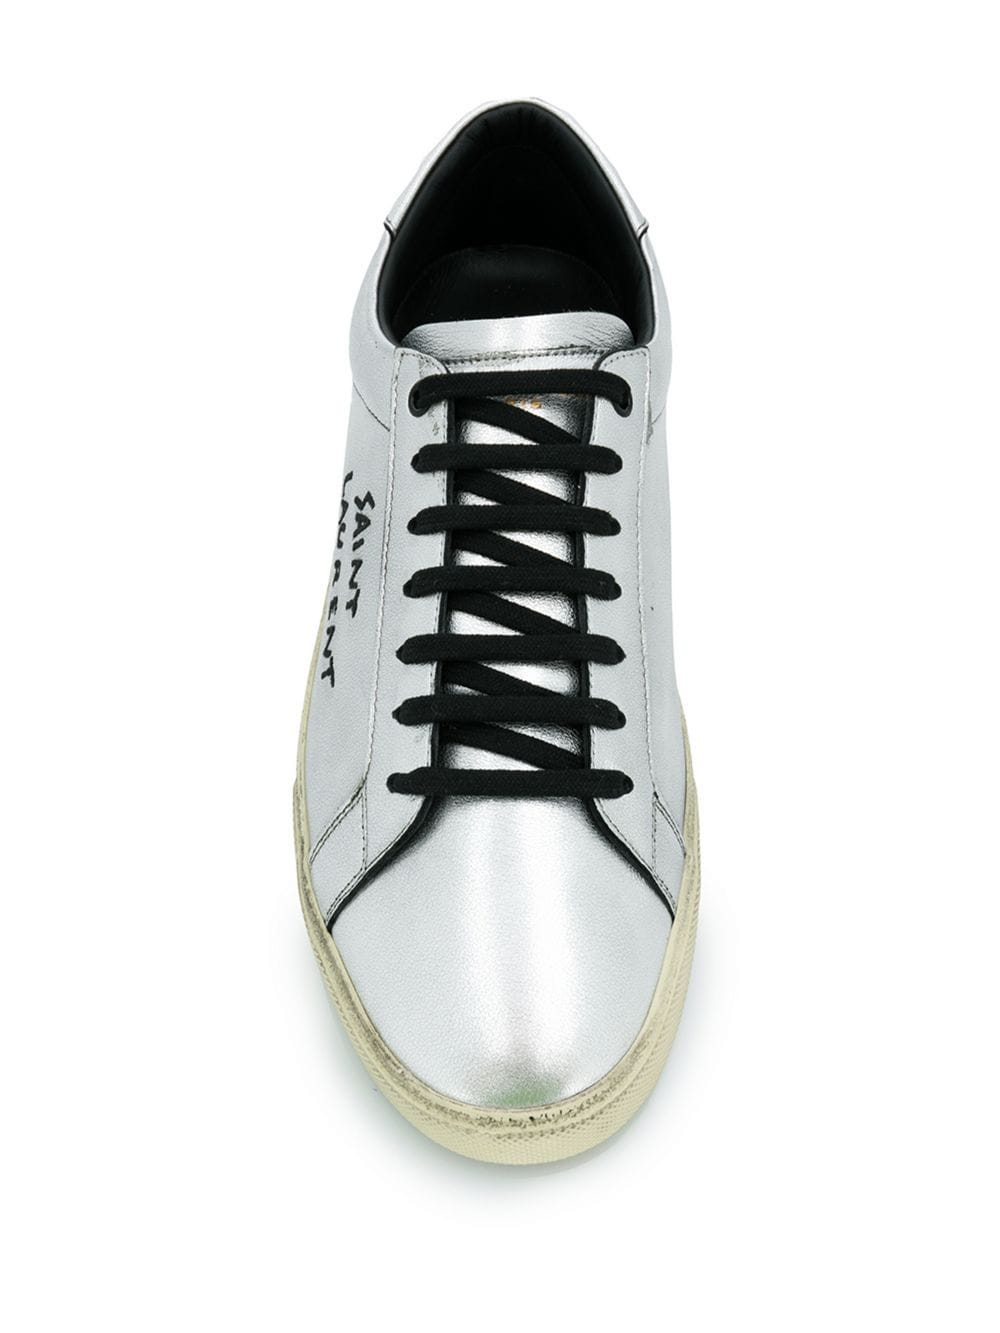 SAINT LAURENT MEN SL/06 LOW TOP SNEAKER